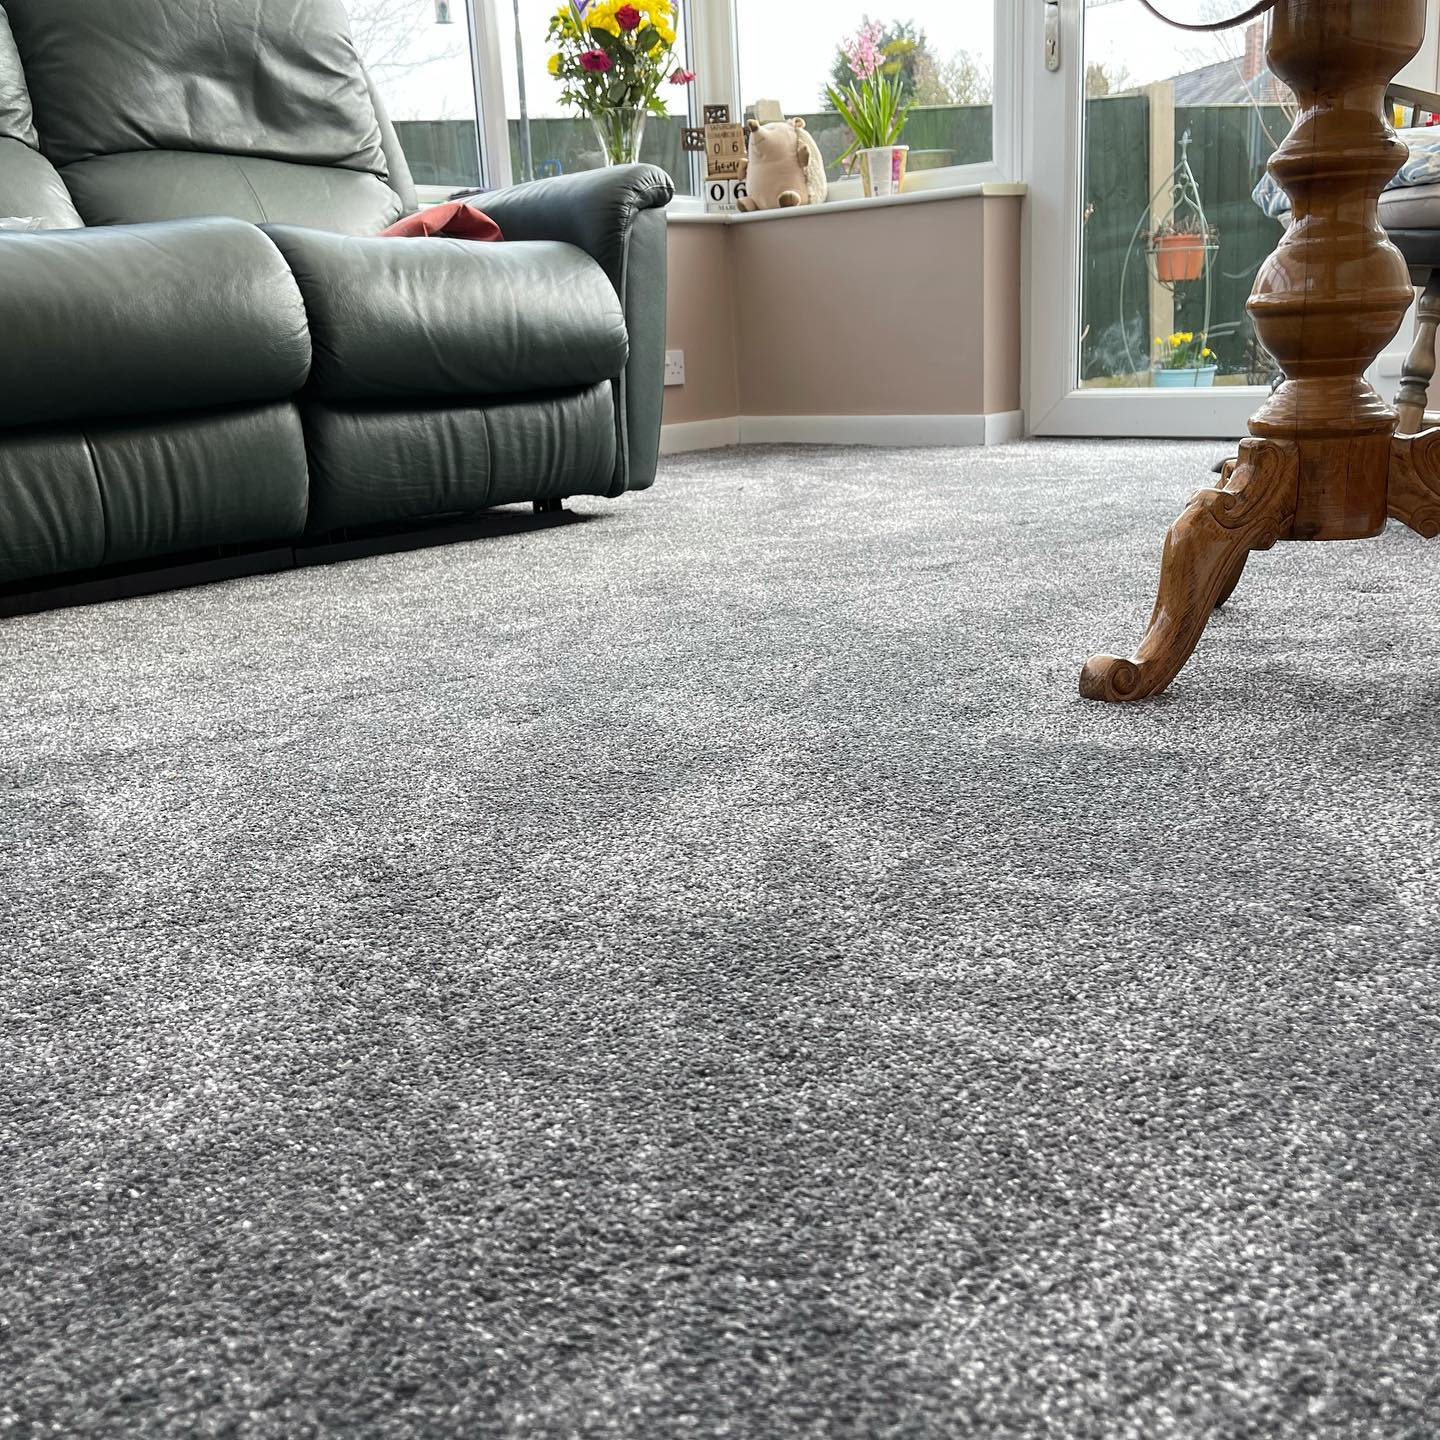 lounge carpeted altrincham